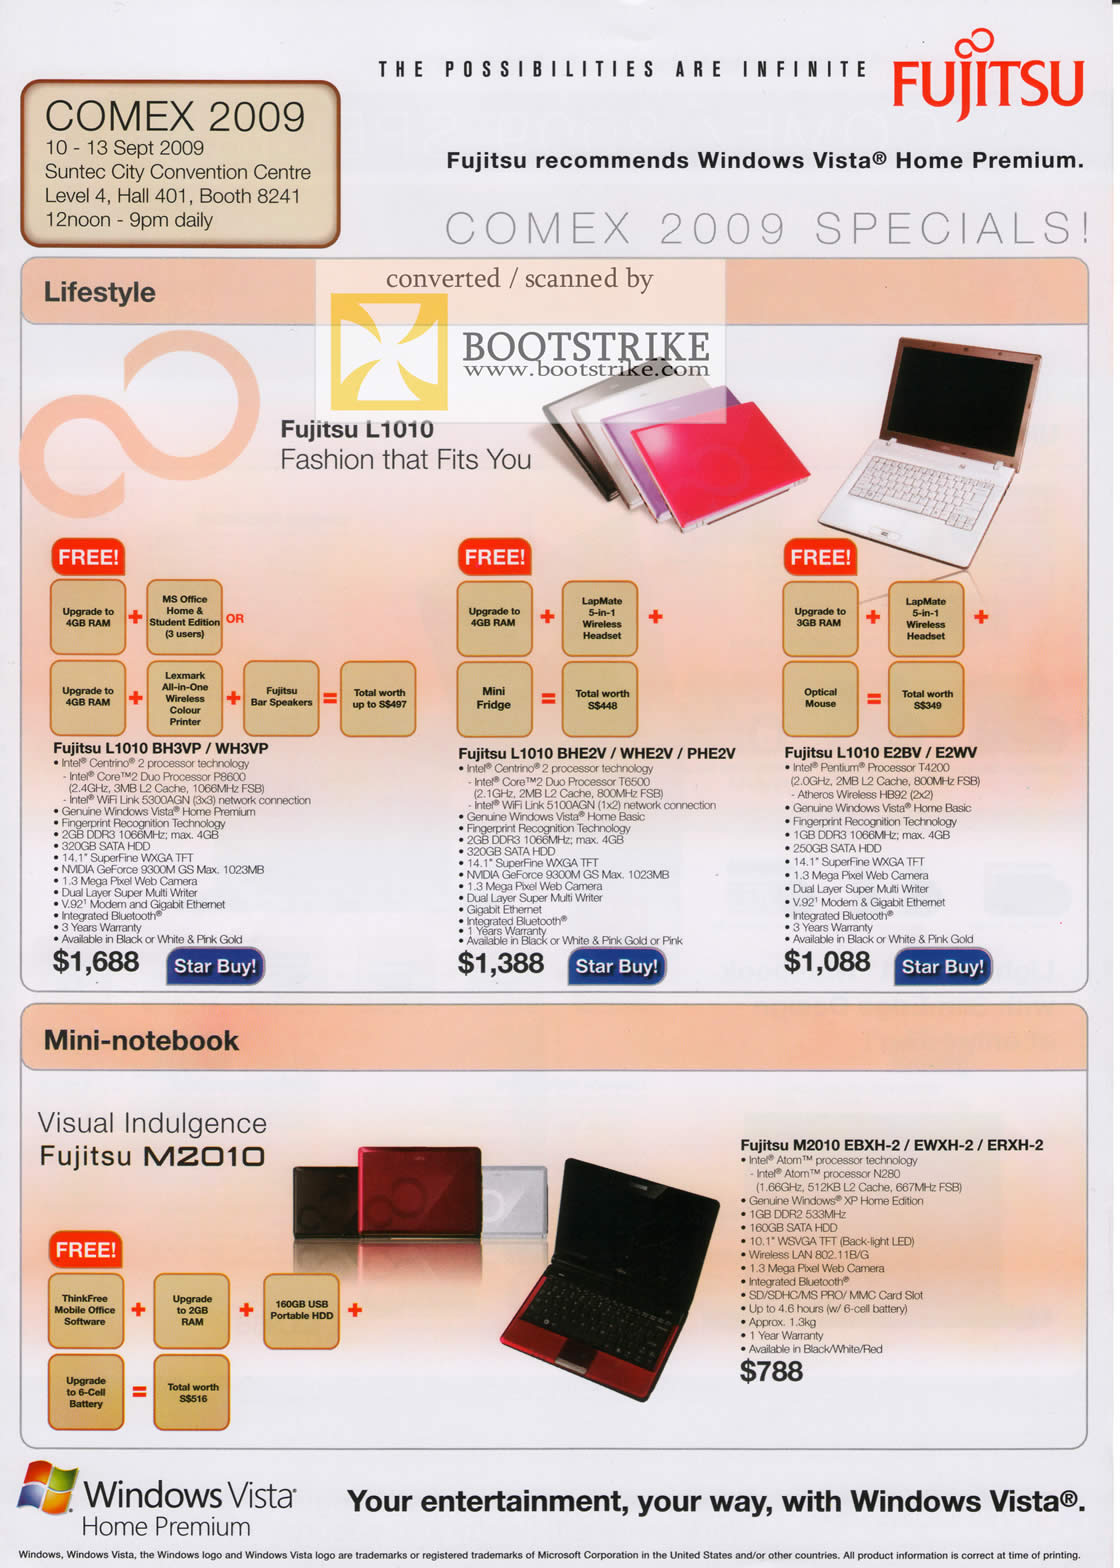 Comex 2009 price list image brochure of Fujitsu Notebook L1010 Mini M2010